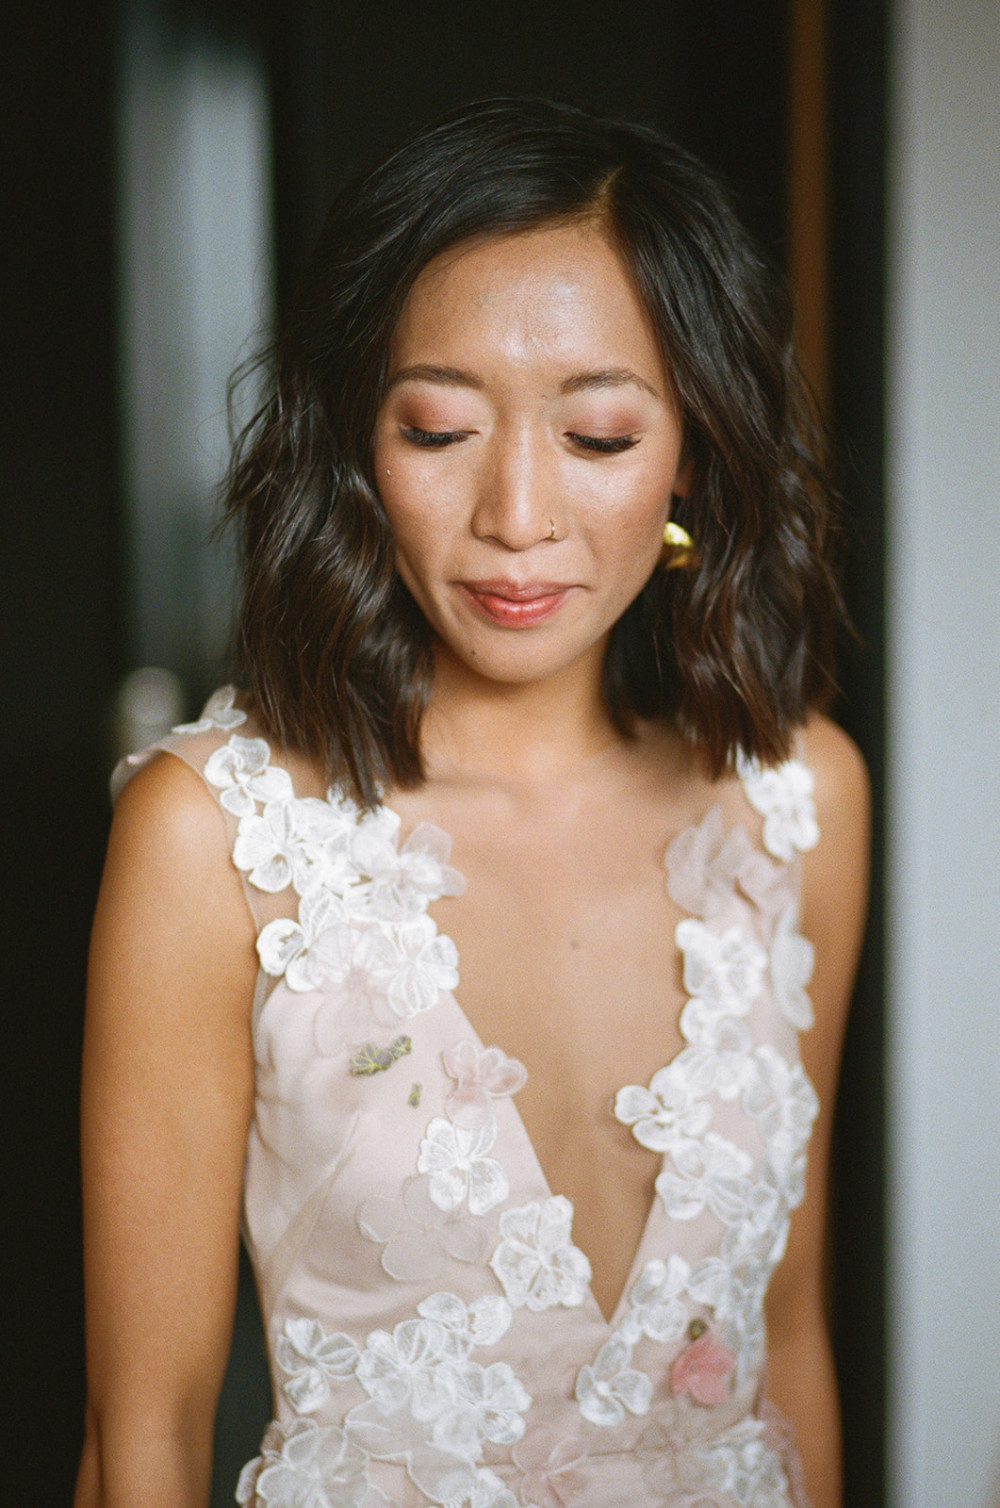 Warm, natural and fresh was the brief for King-Wey on her big day. - Make Me Bridal Artist: Laura Anne Hair & Makeup Designer. Photography by: Jessica Williams. #chinesebridalmakeup #freshmakeup #trendybride #shorthairbride #modernmakeup